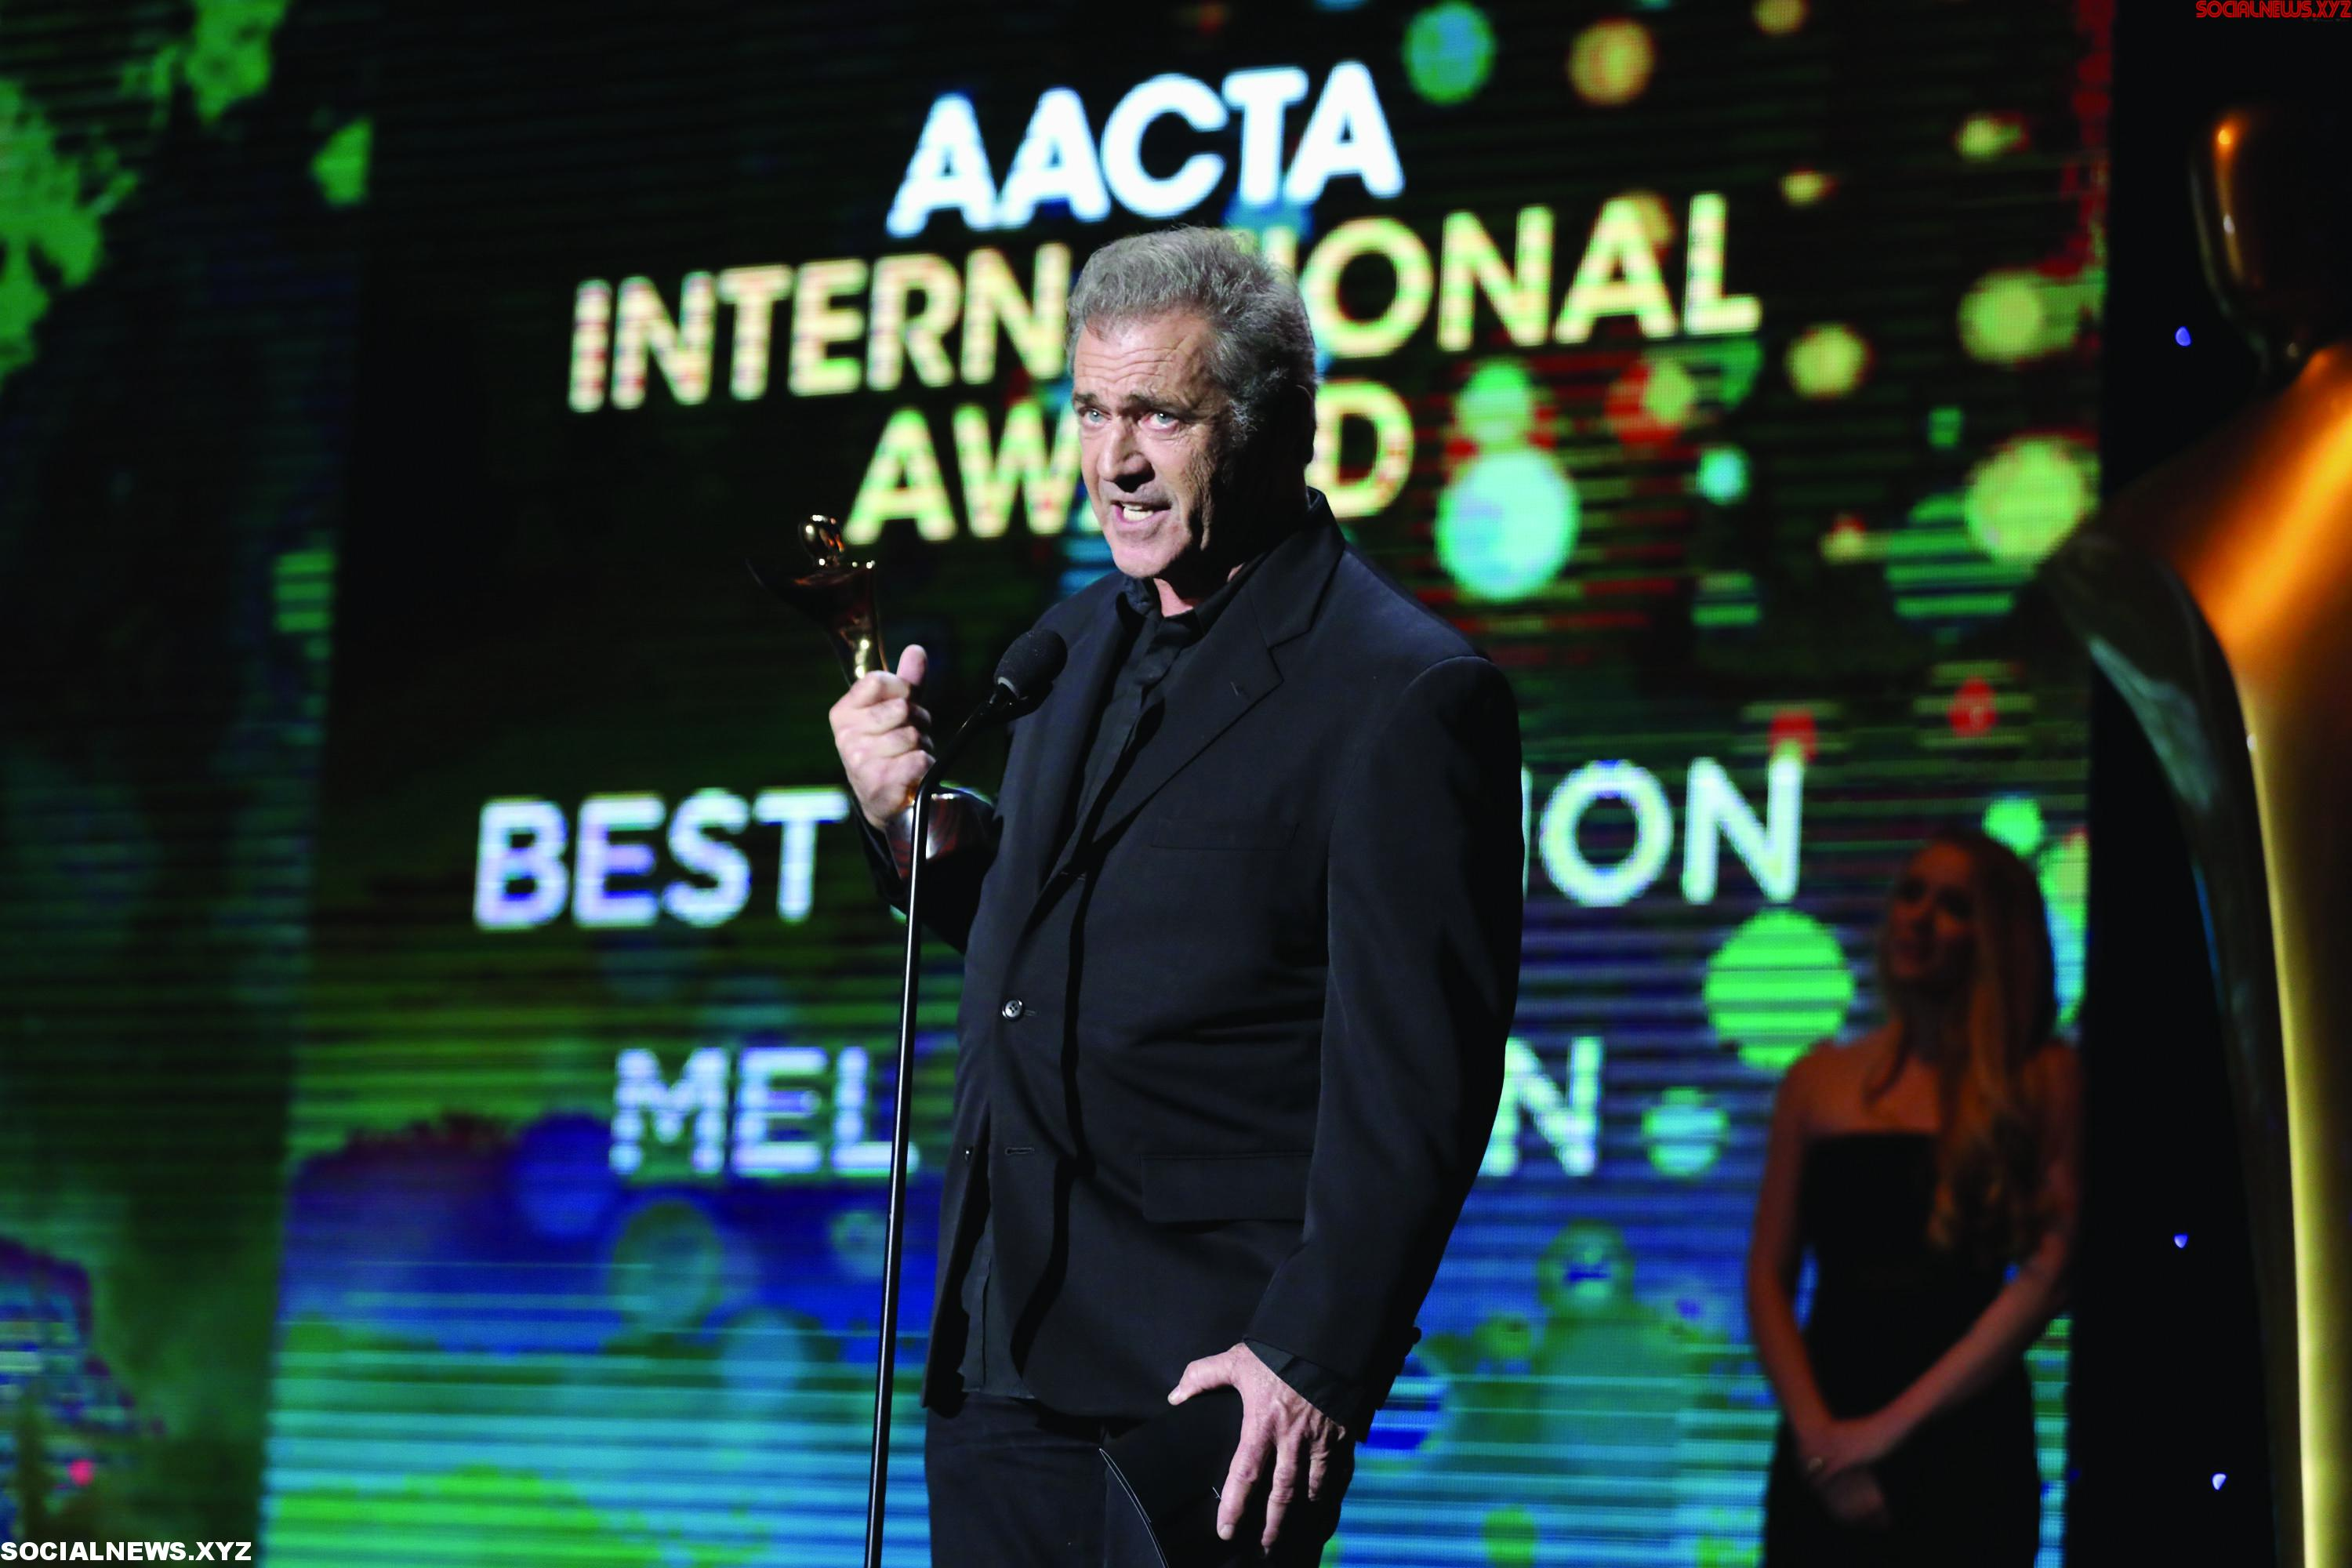 6th AACTA International Awards Awards Ceremony In Room Gallery